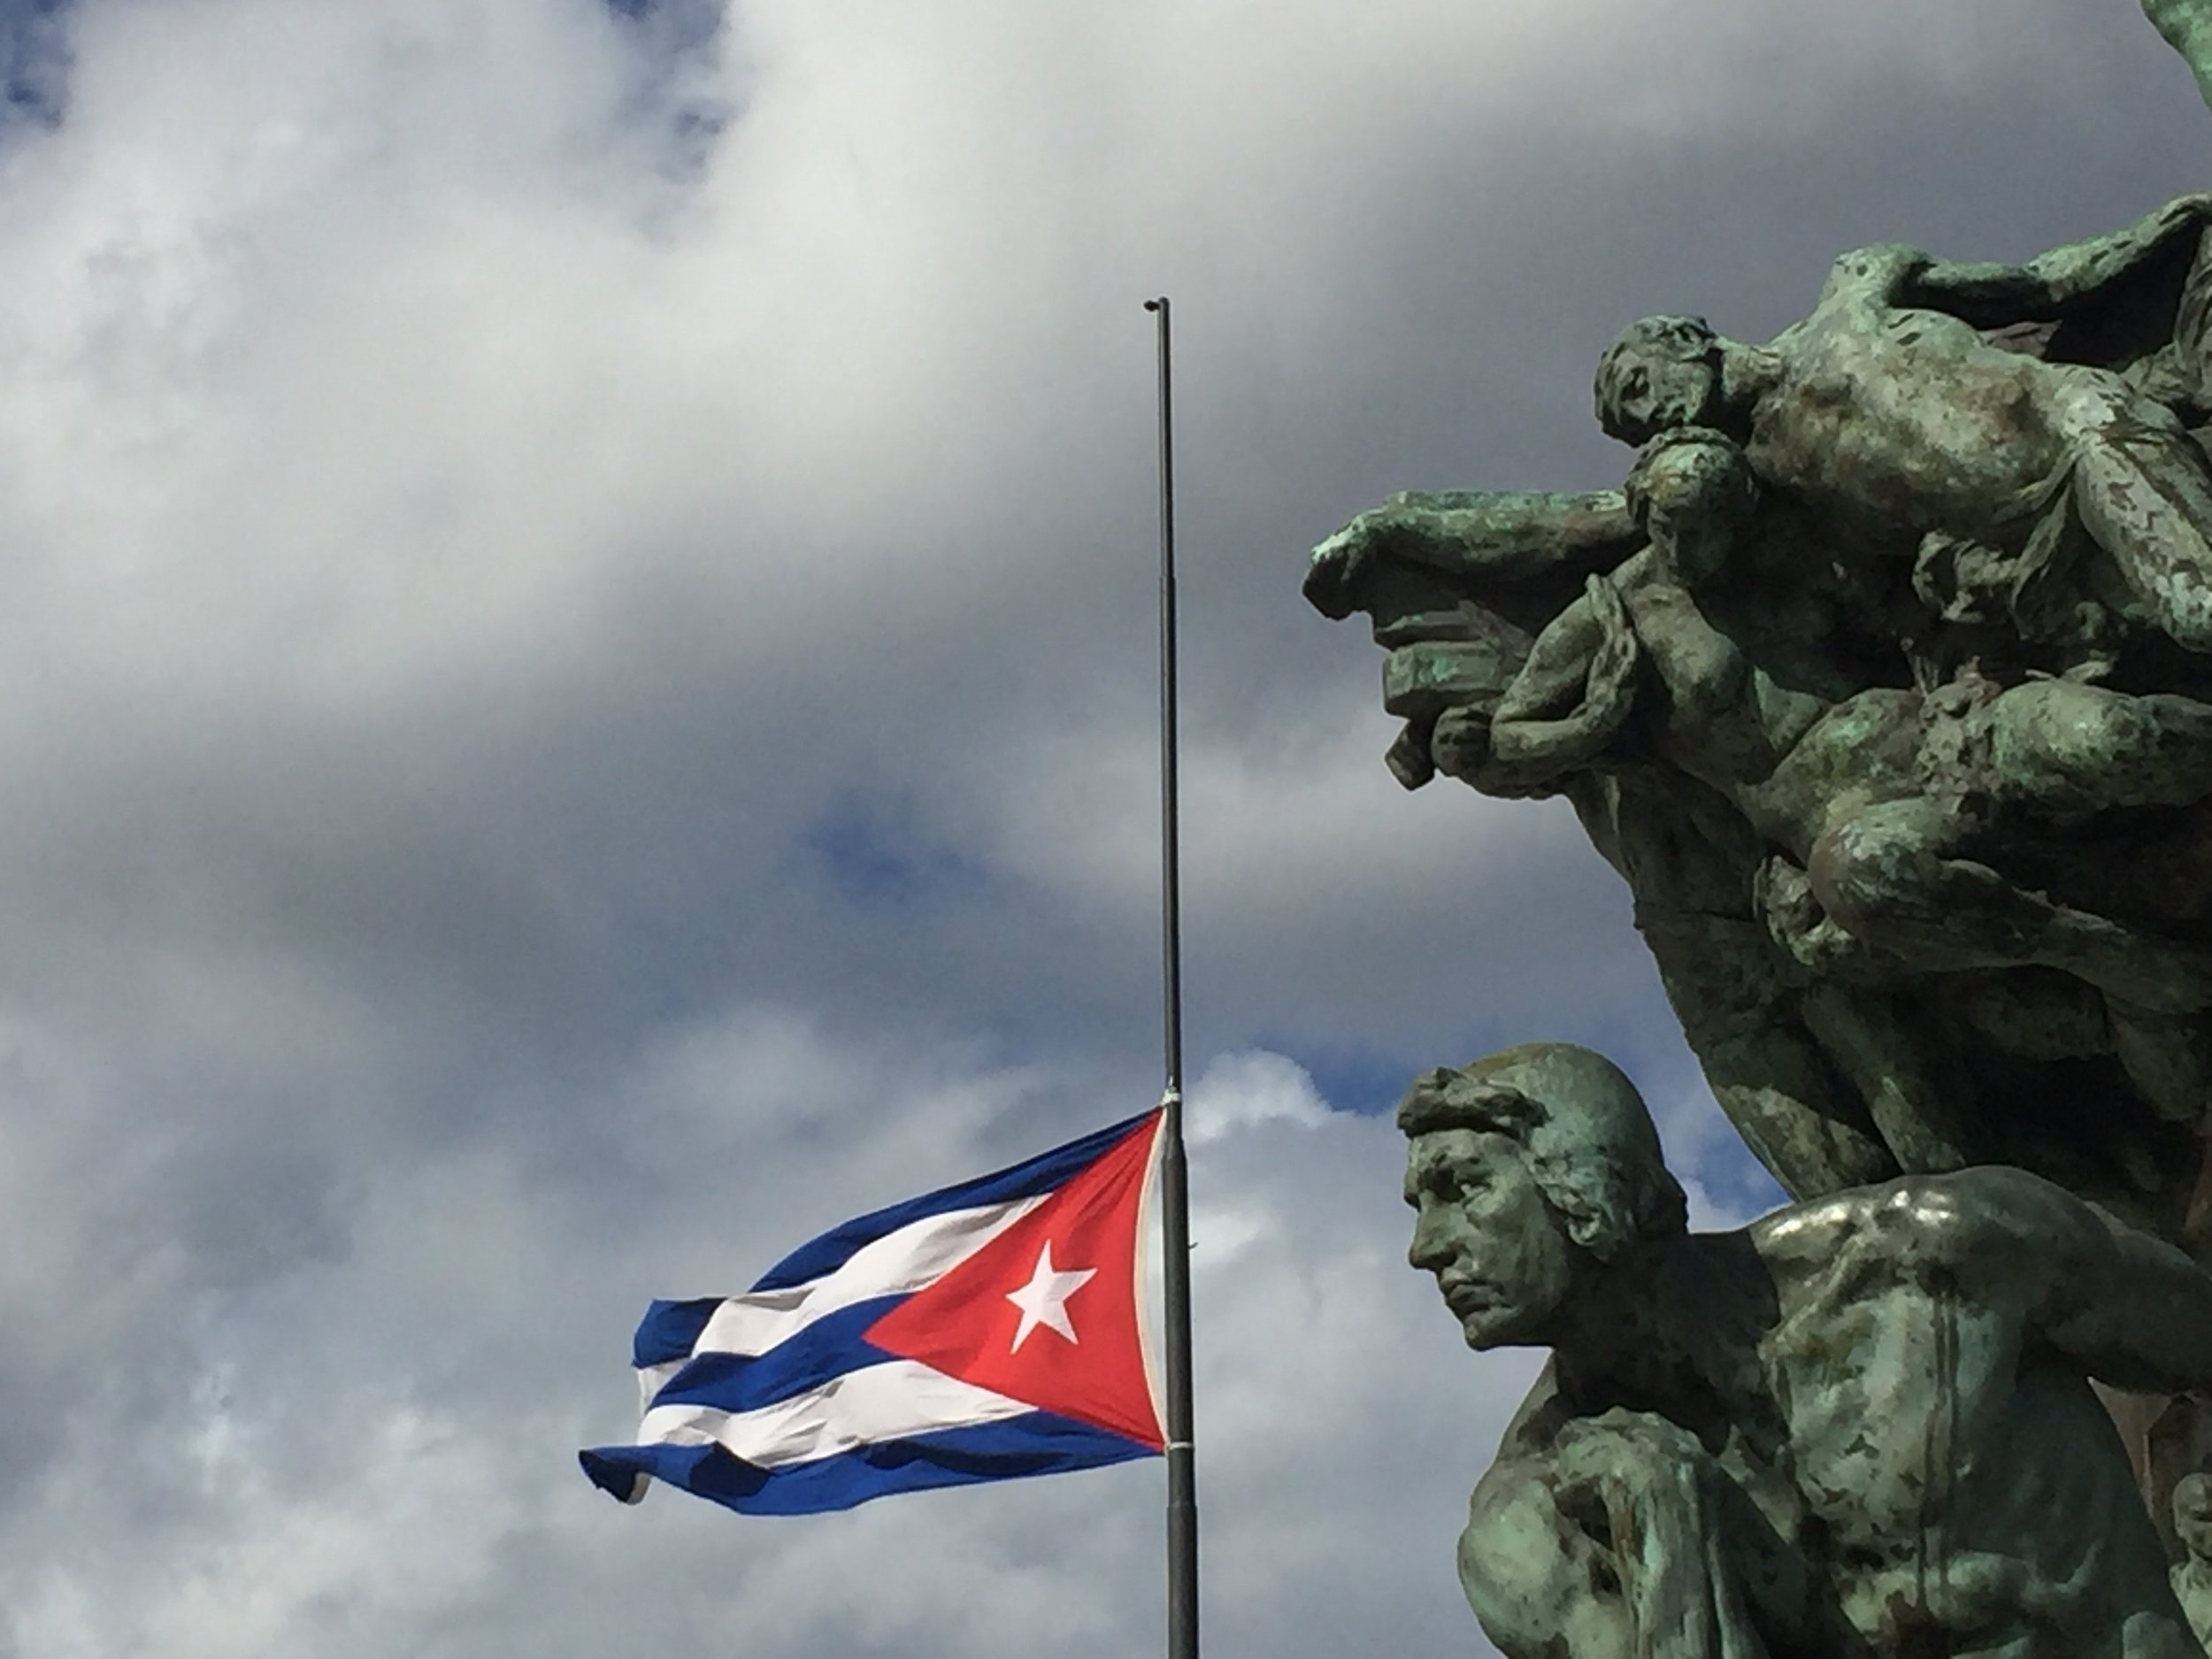 The Cuban flag at the Parque Antonio Maceo, along Havana's famous Malecón.